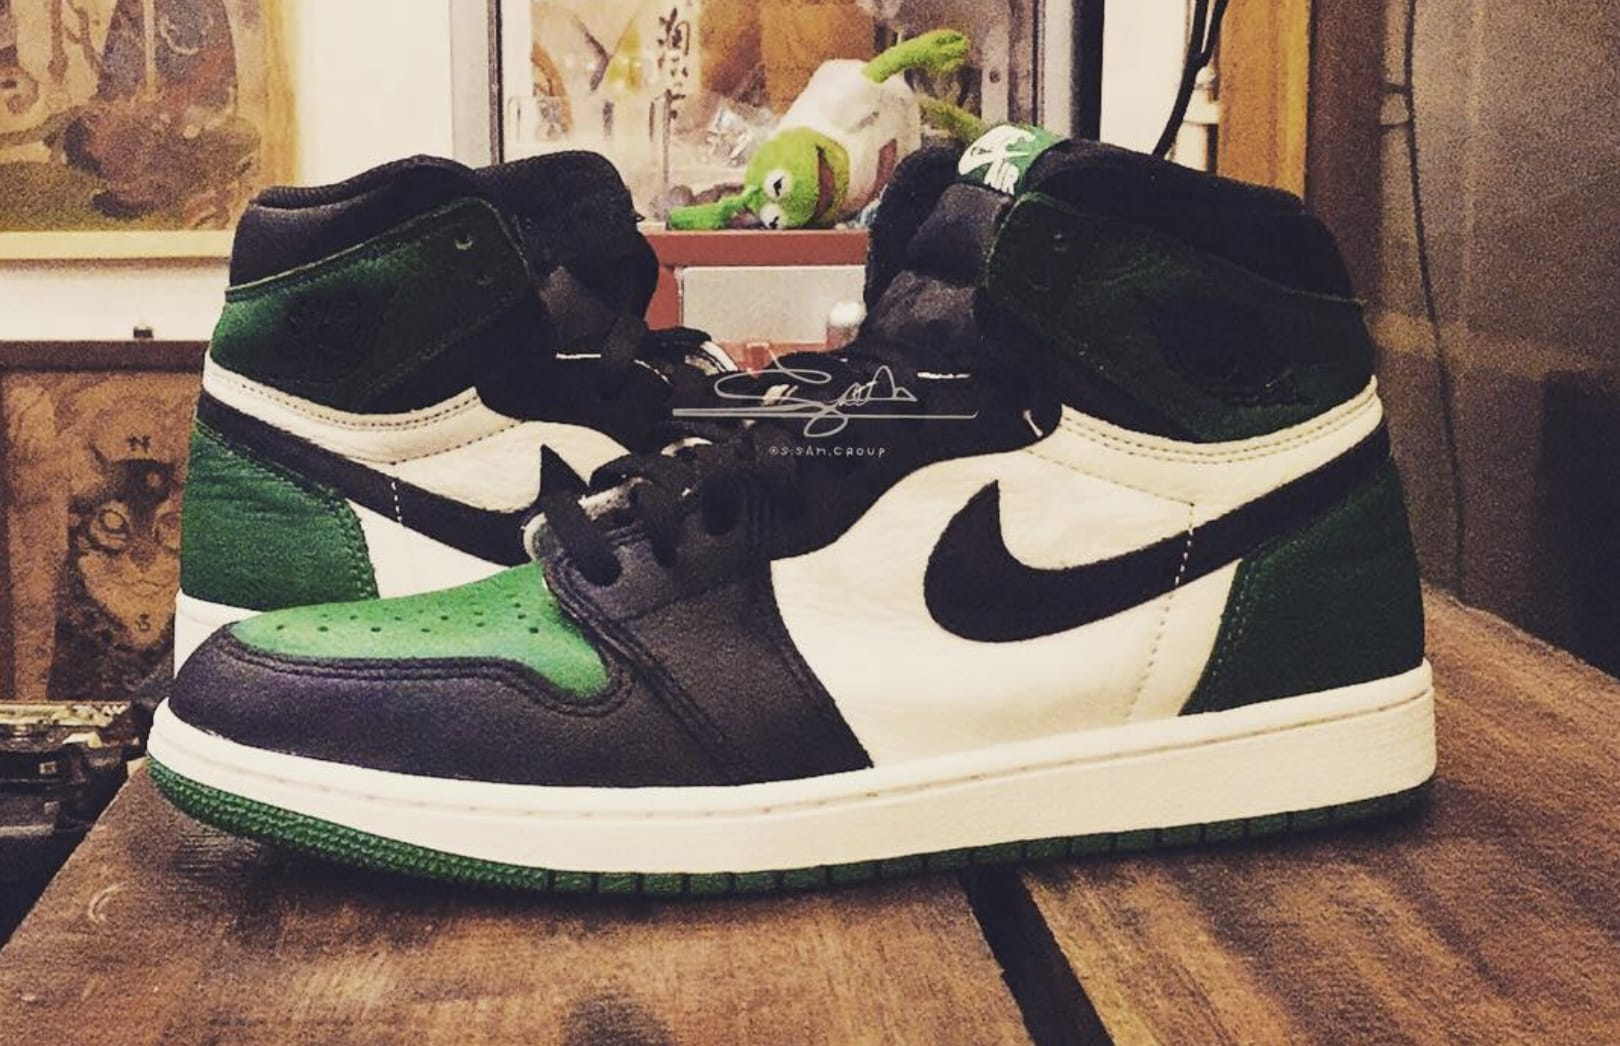 Air Jordan 1 High NRG 'Pine Green/Sail-Black' 555088-032 2